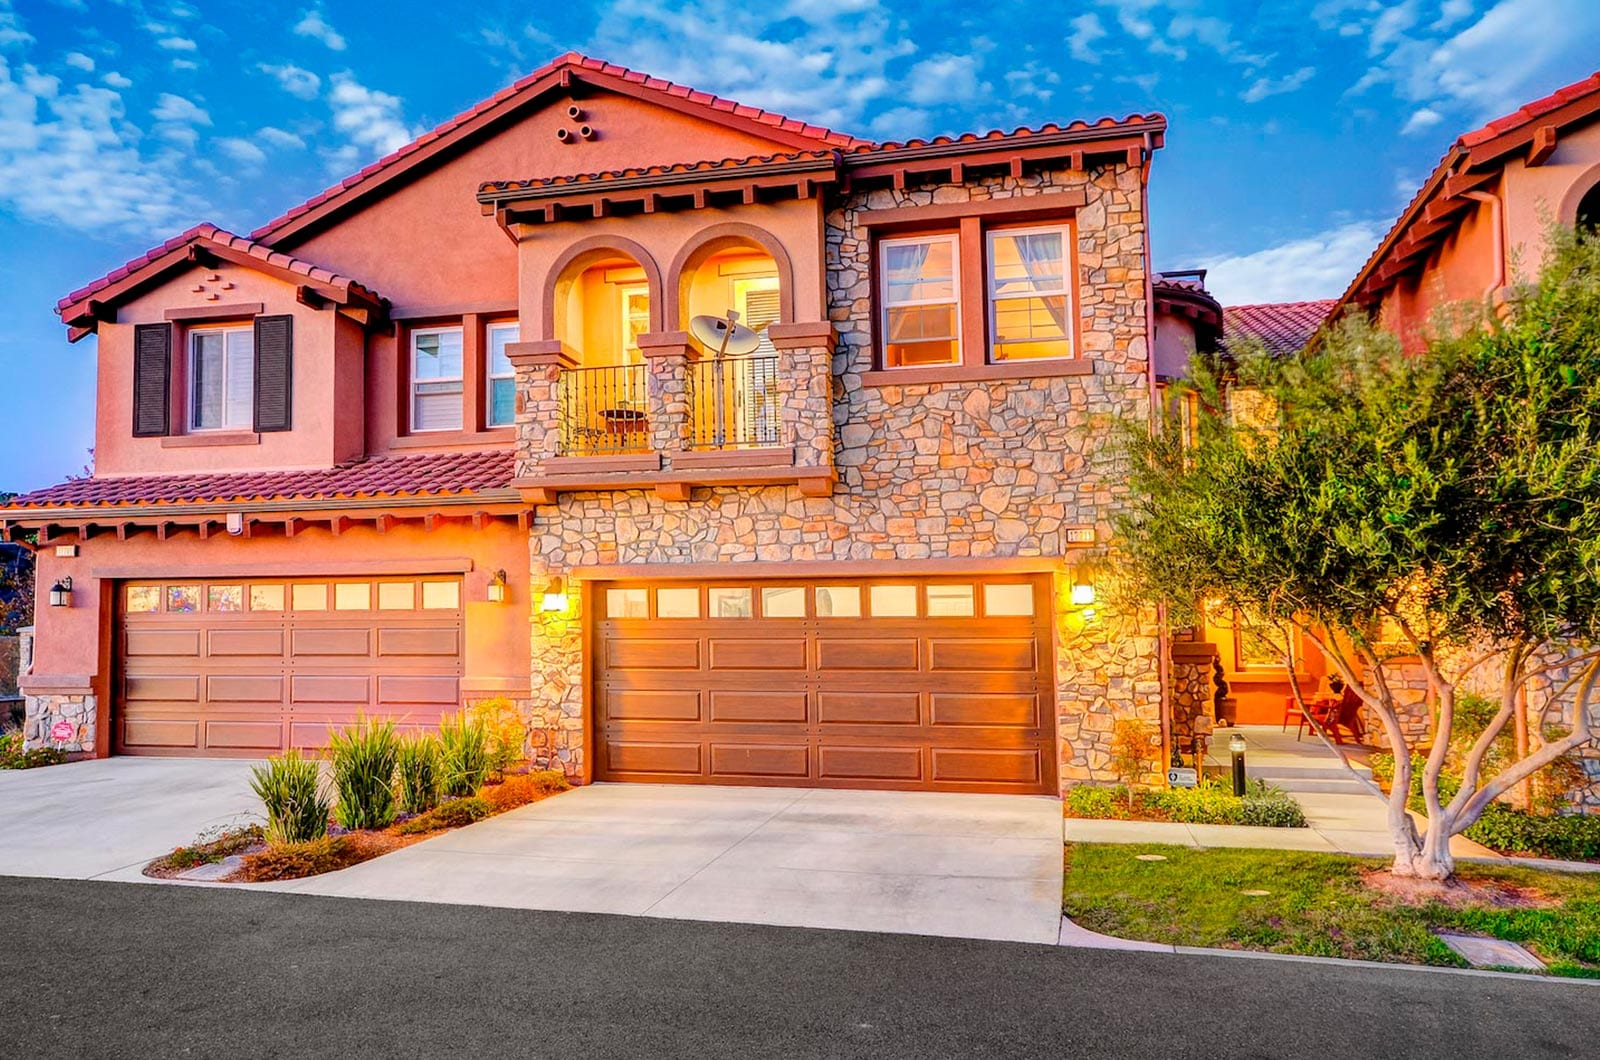 Feat-Image-Professional-real-Estate-Photography-Services